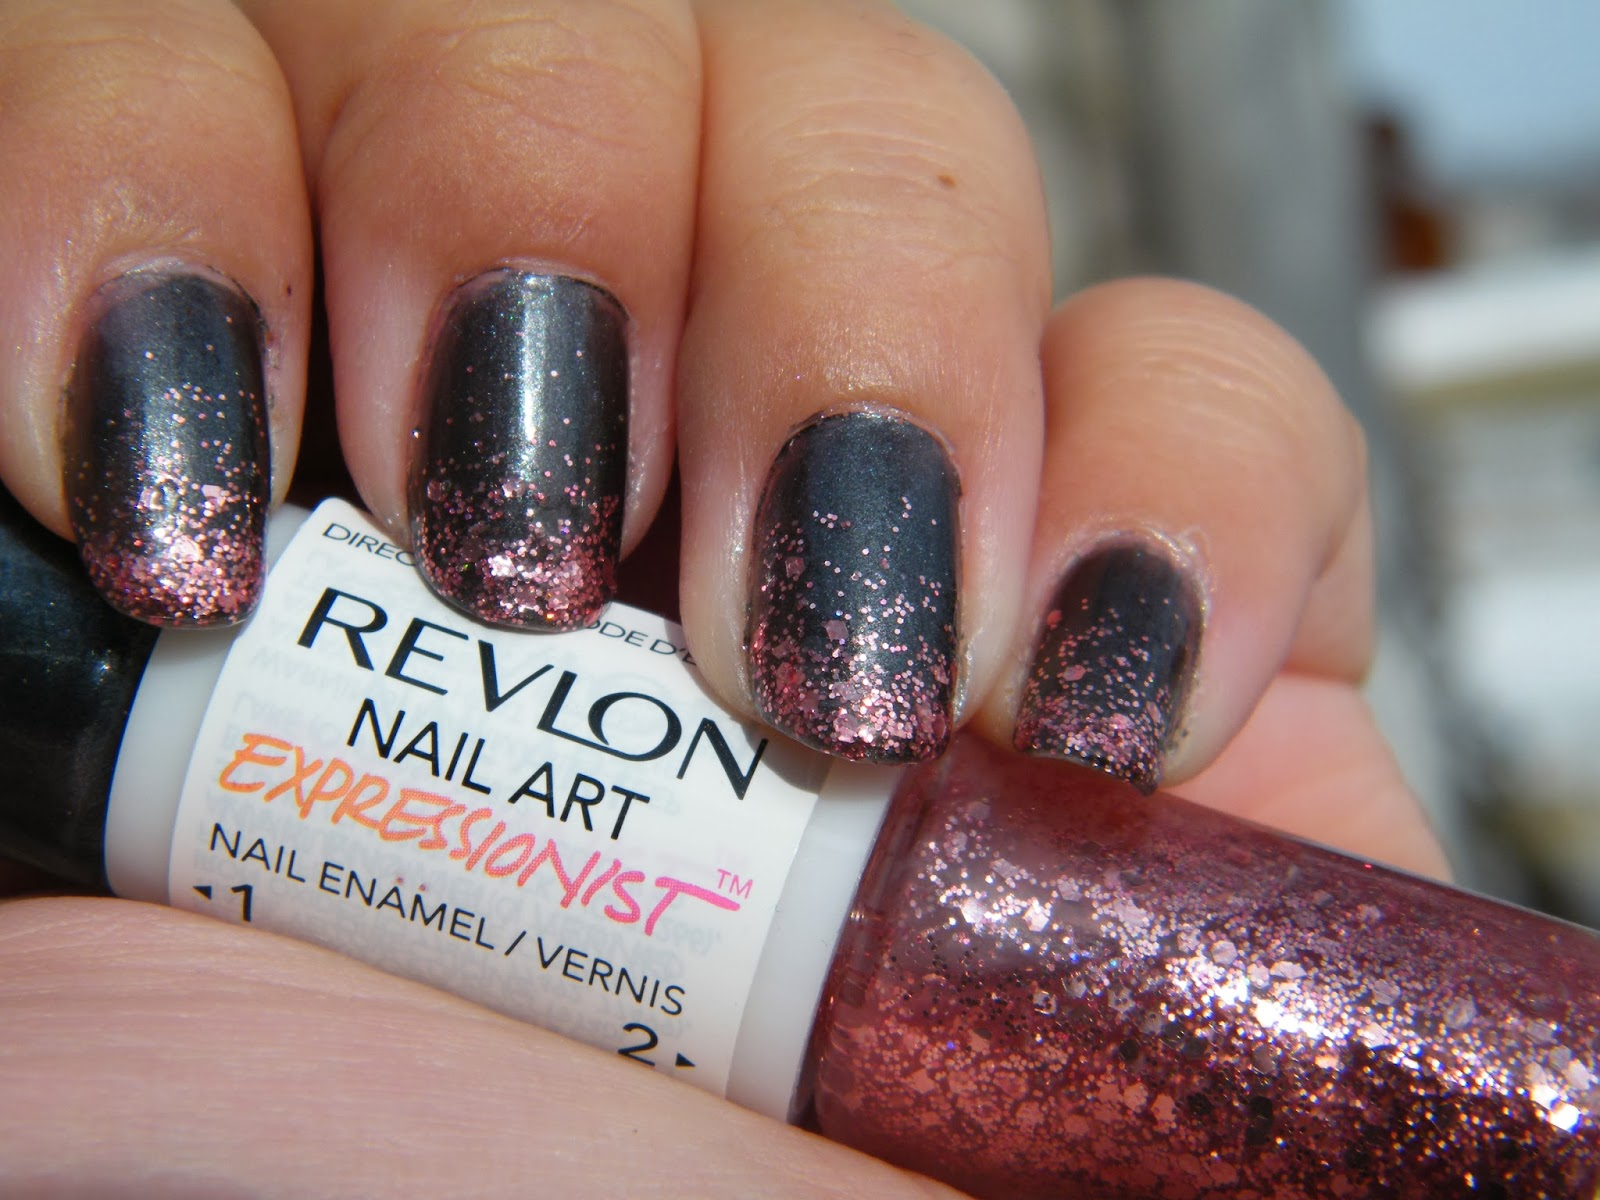 Noxyism revlon nail art expressionist in ulterior motive review revlon nail art expressionist in ulterior motive review prinsesfo Images